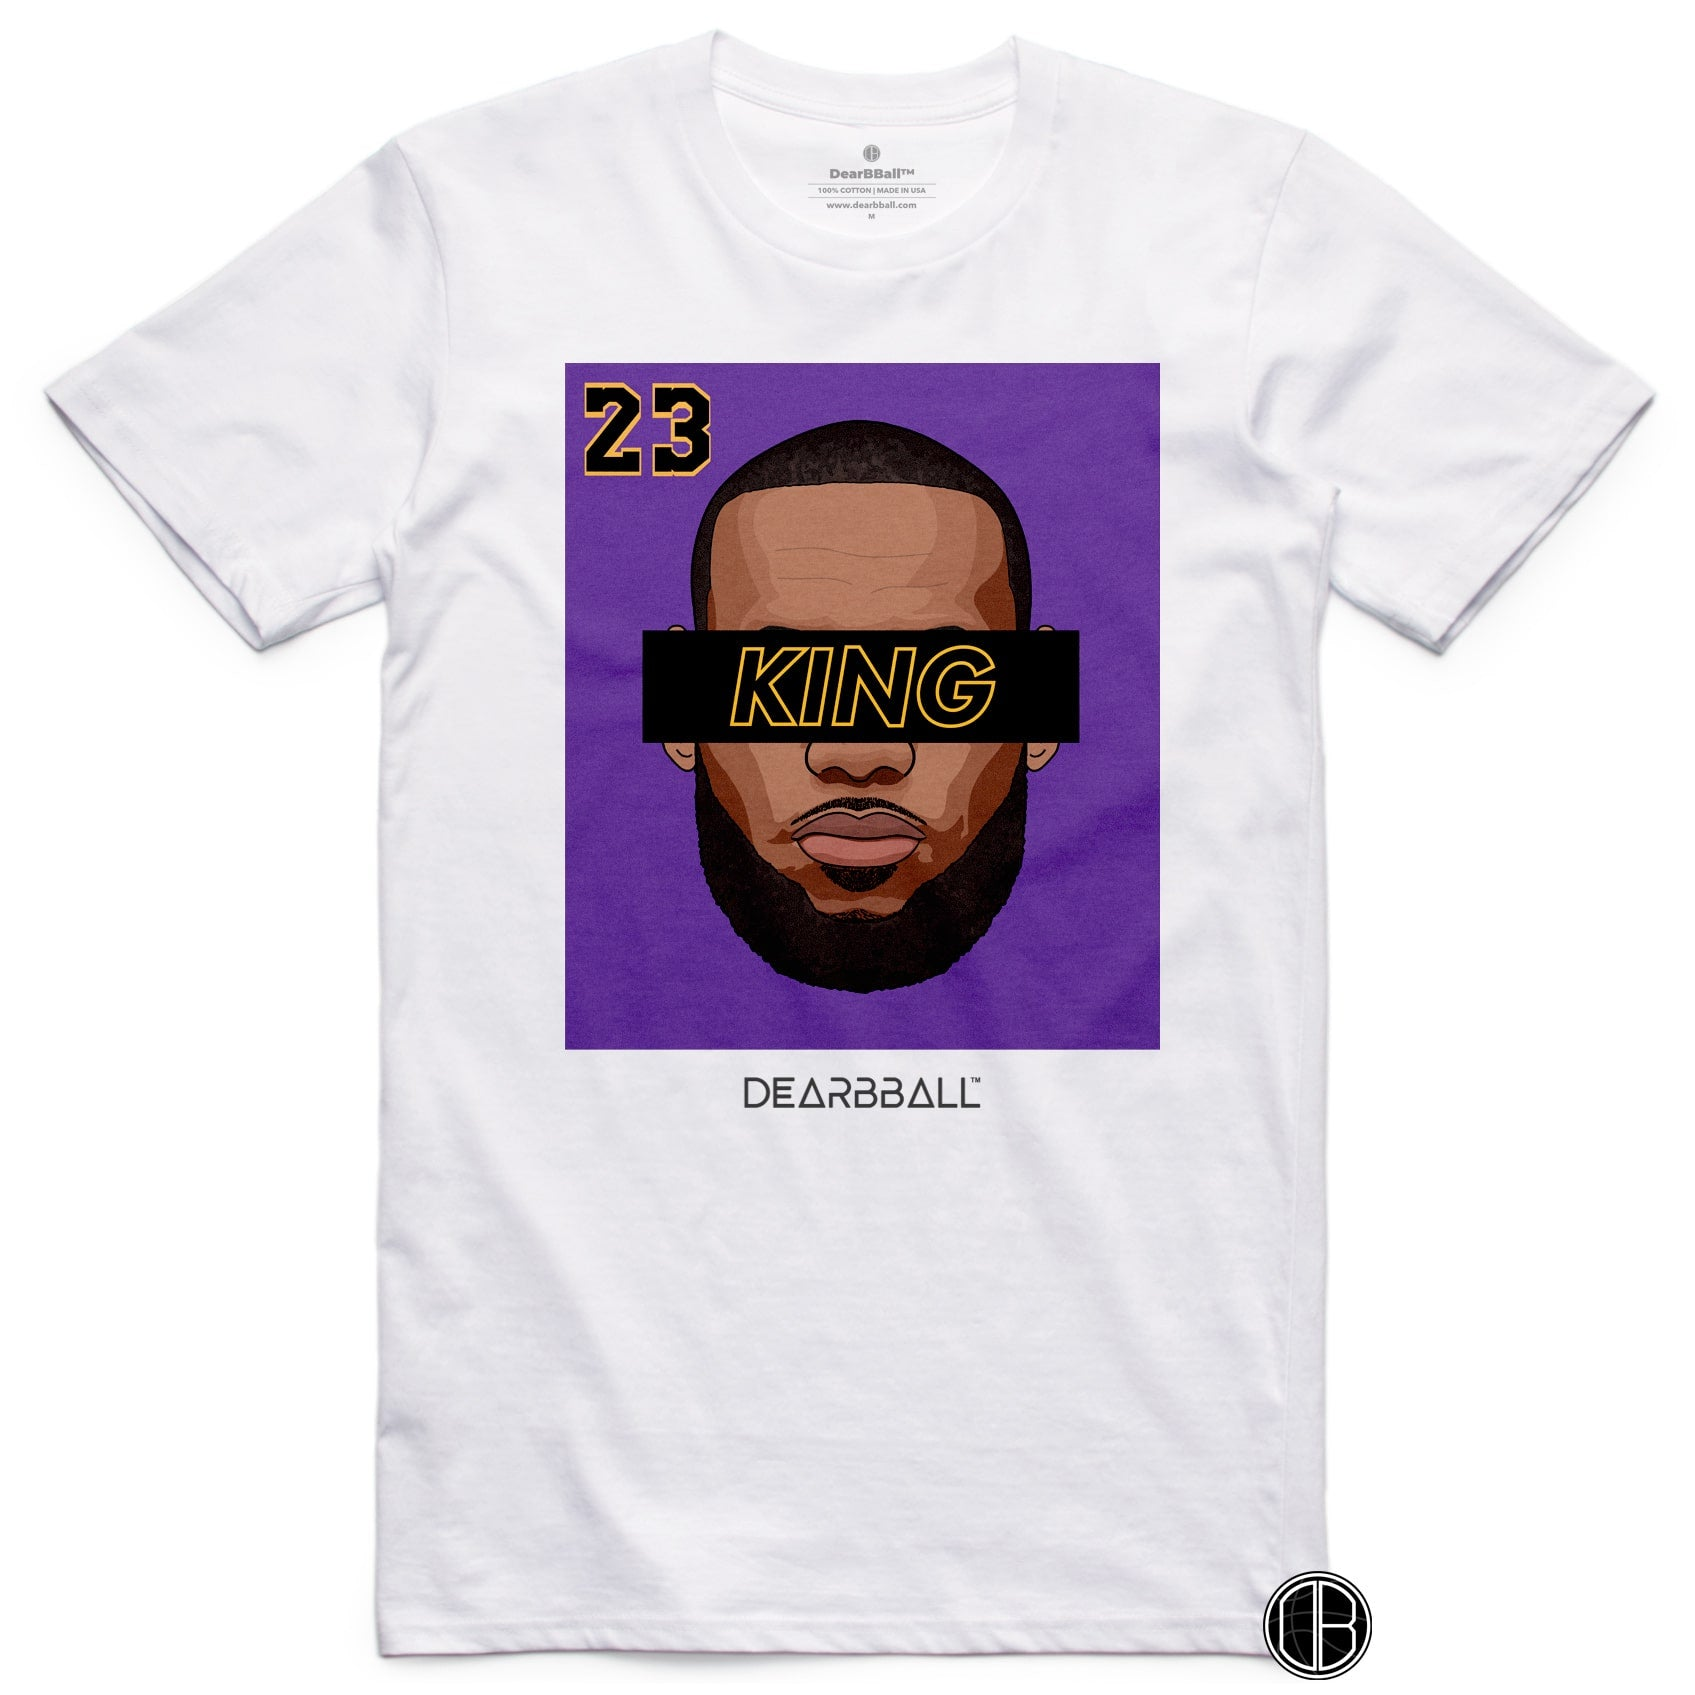 LEBRON JAMES T-Shirt KING 23 Purple Black Limited Edition white